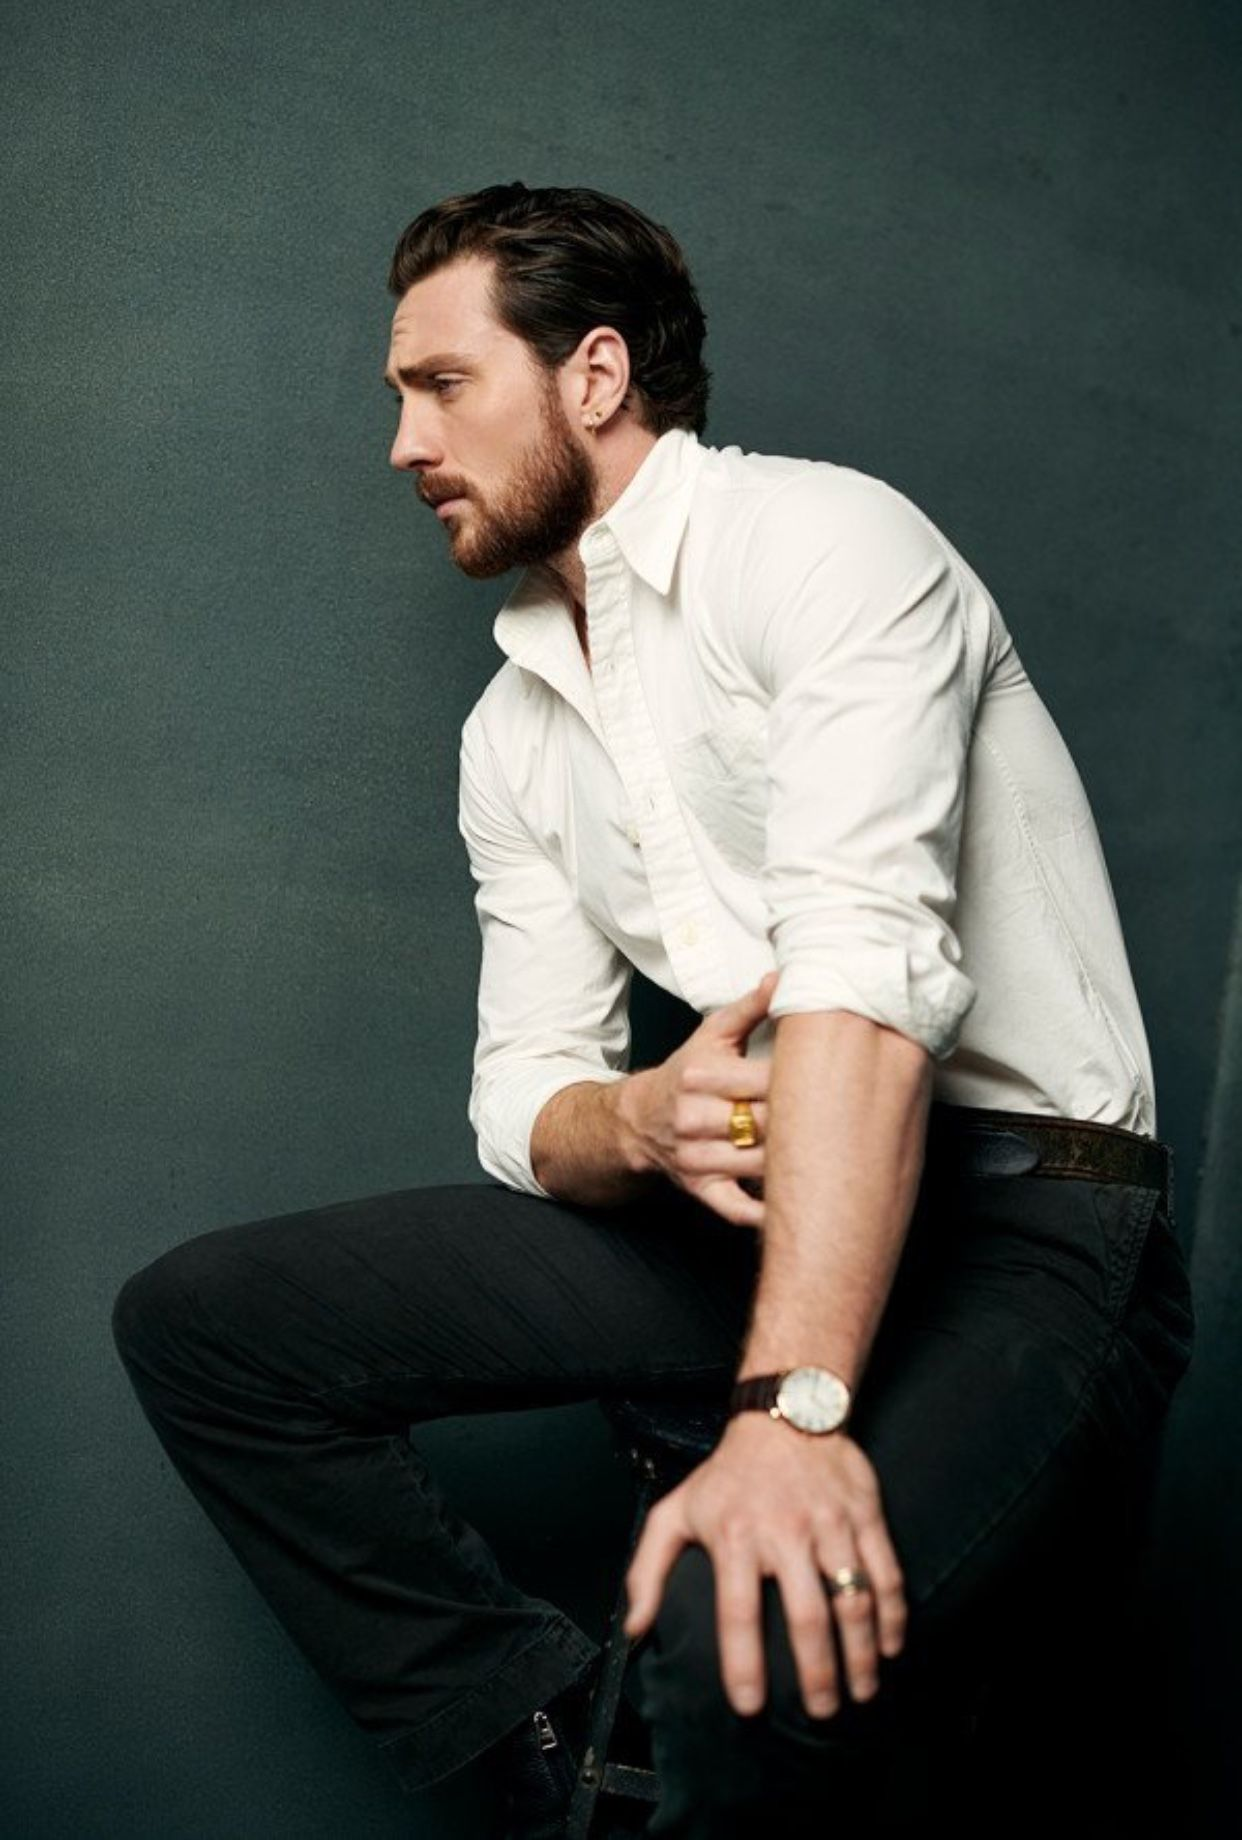 Pin by M on Celebrities | Aaron taylor johnson quicksilver ...